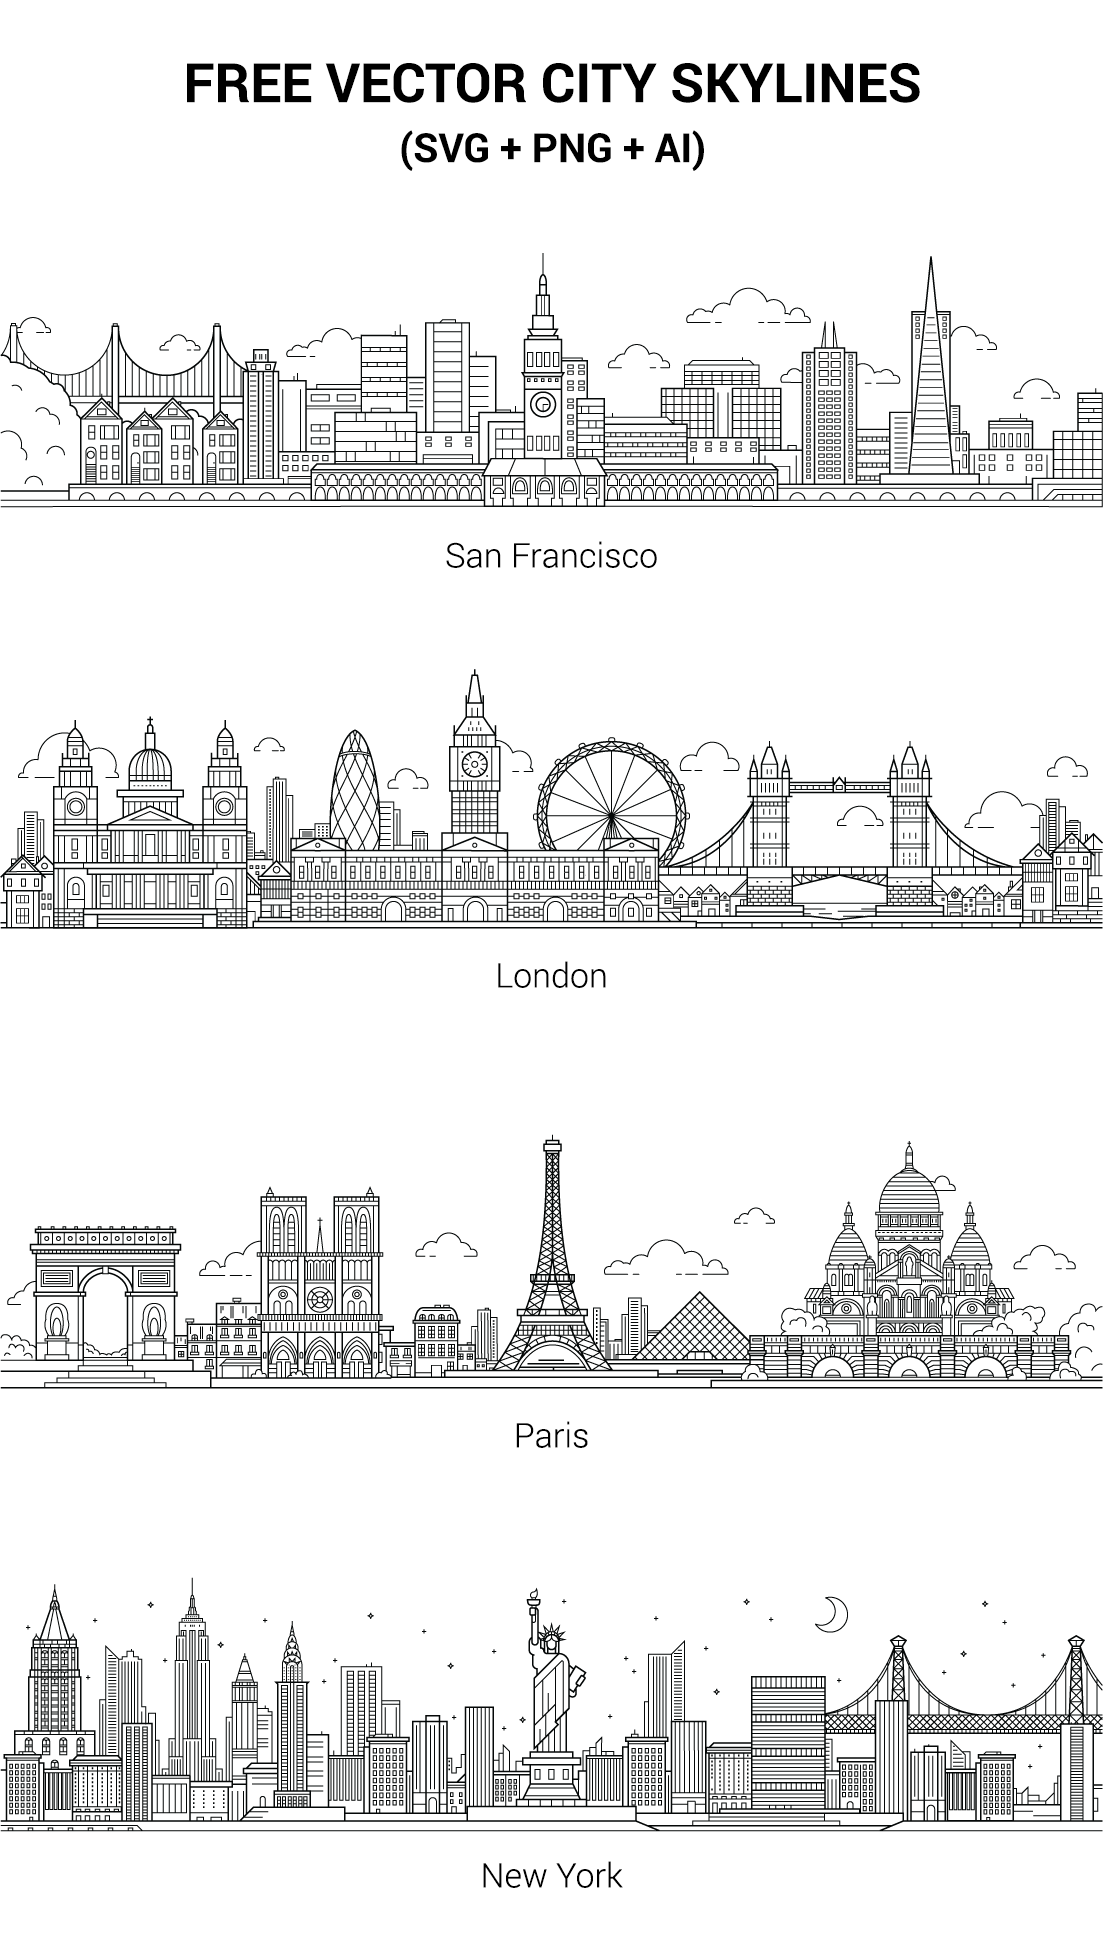 Today We Got A Beautiful Set Of City Skylines Vectors For Your Next Project The Vectors Are Free To Use For Any Commercial Or Non Commercial Projects